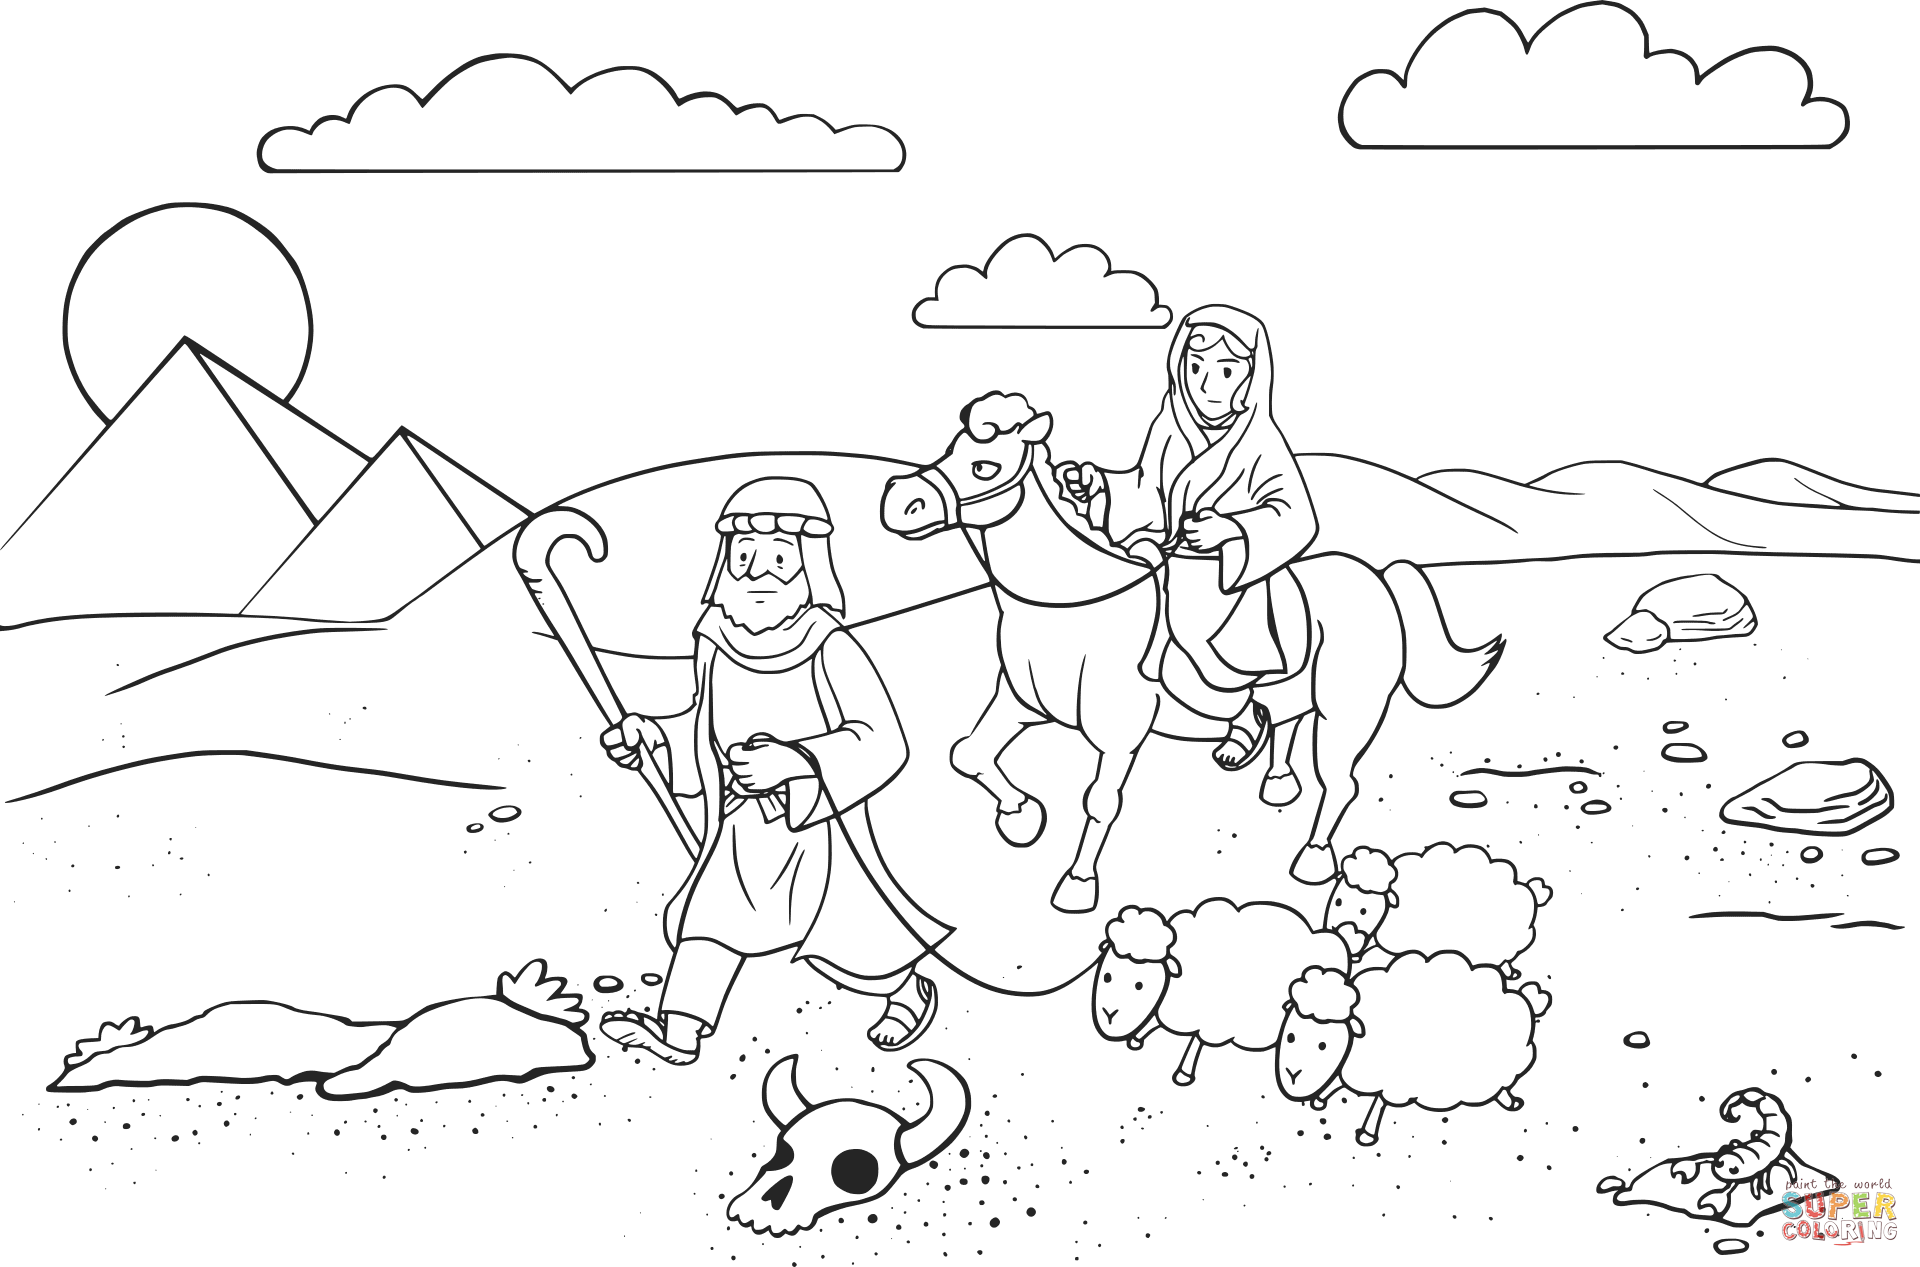 Abram And Sarai Traveling To Egypt Coloring Page